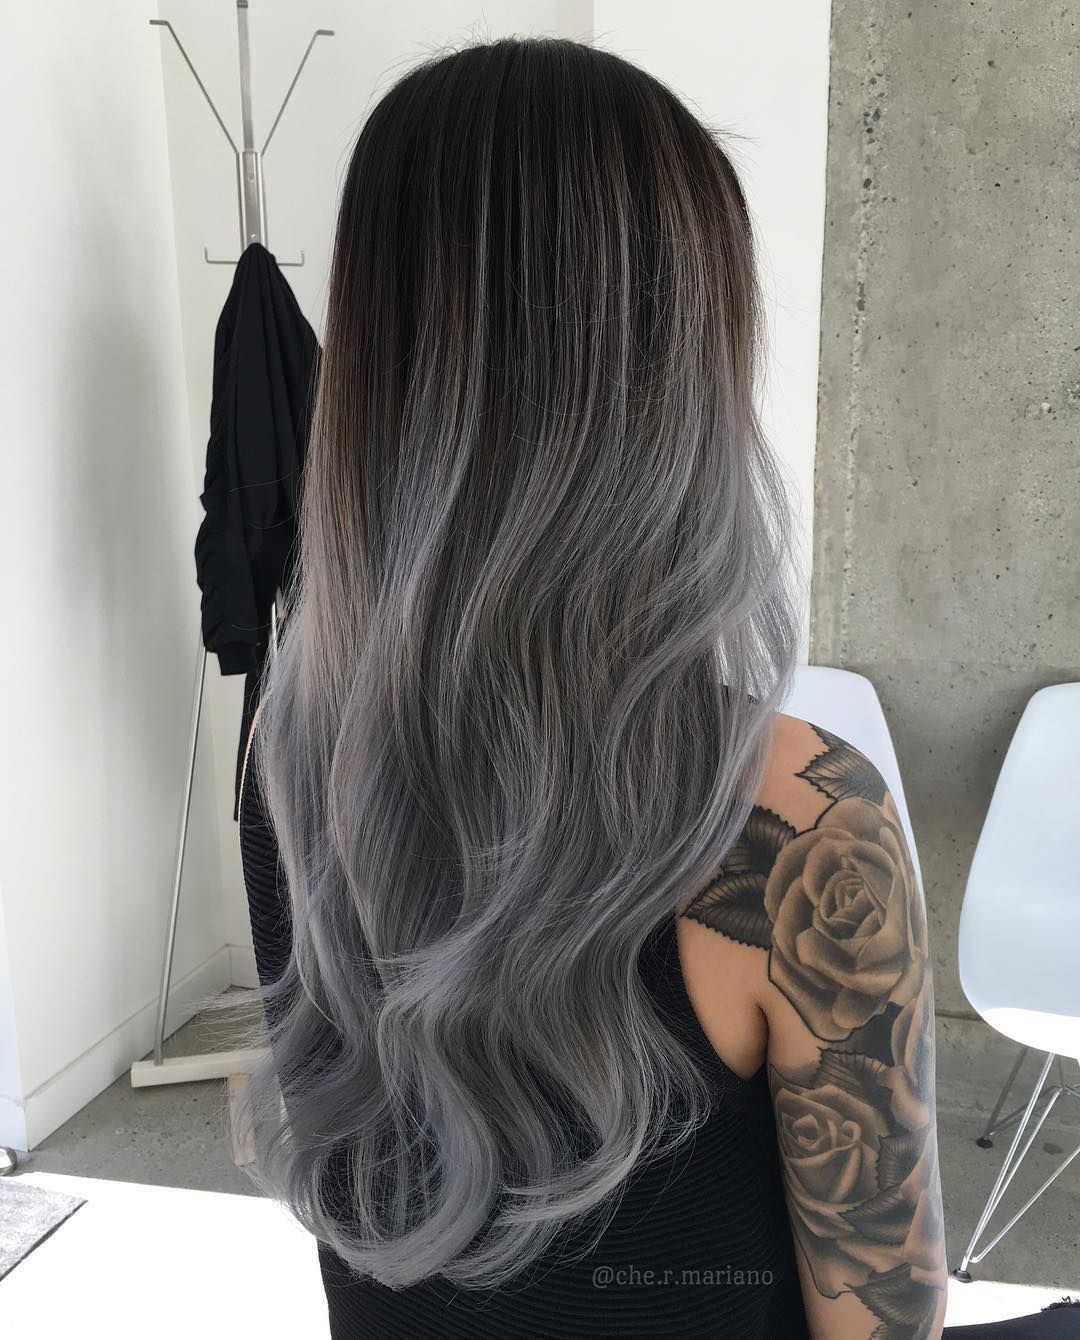 shades of gray ombr hair perfection